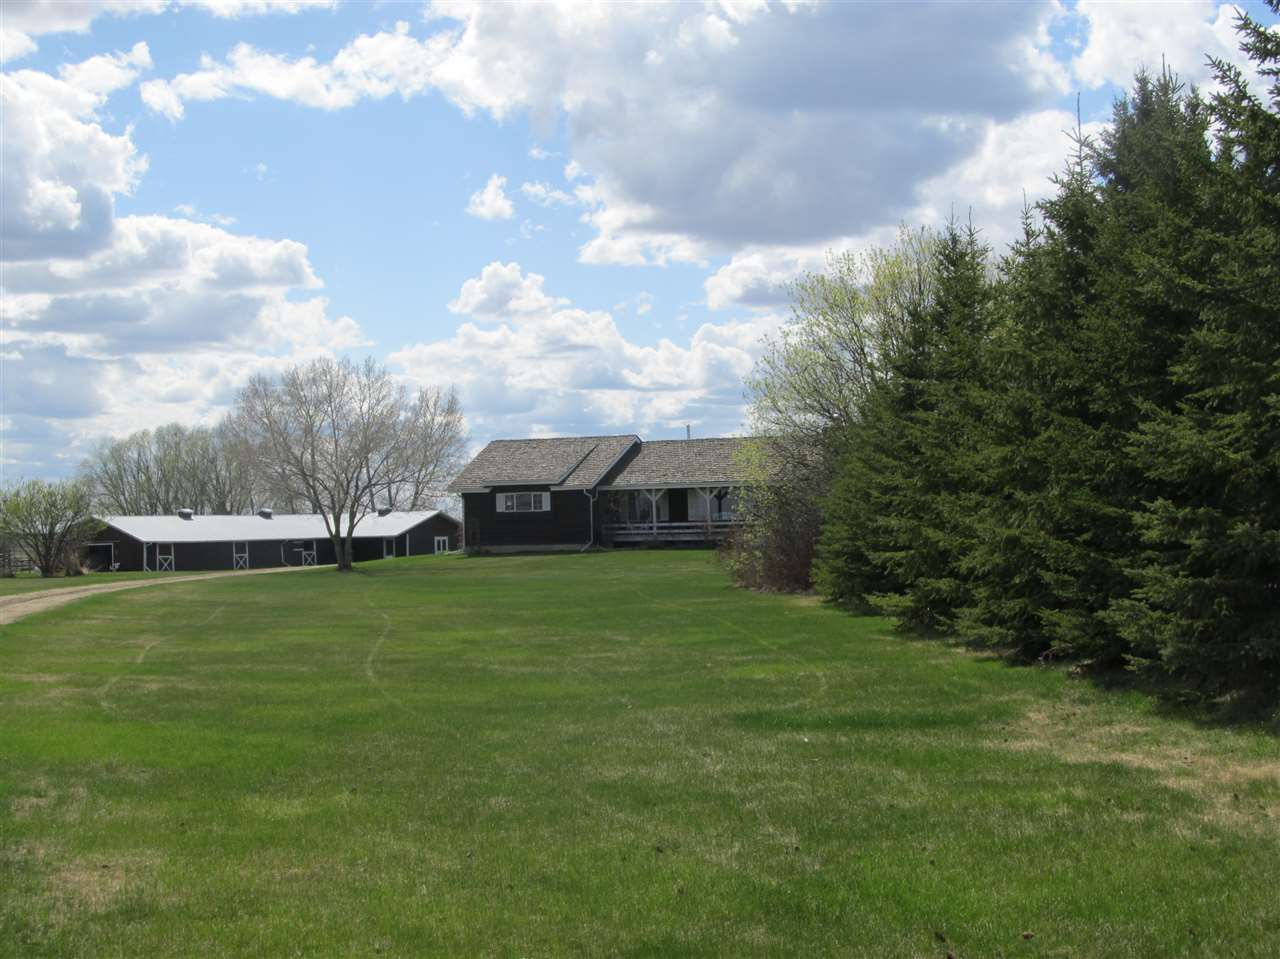 Photo 30: 25308 Twp Rd 570: Rural Sturgeon County House for sale : MLS(r) # E4063269